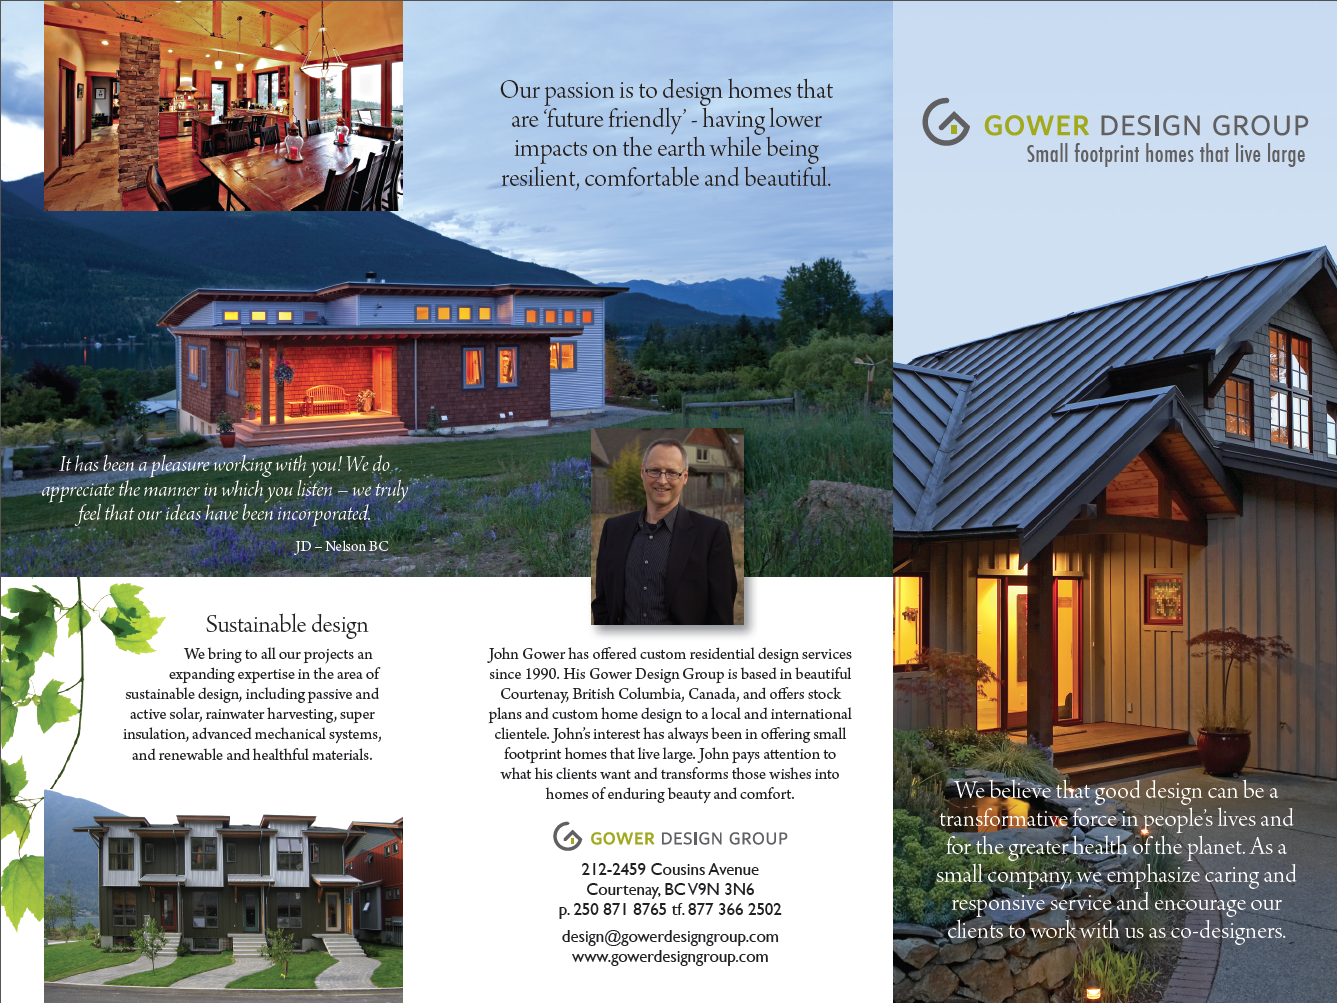 Gower Design Group brochure